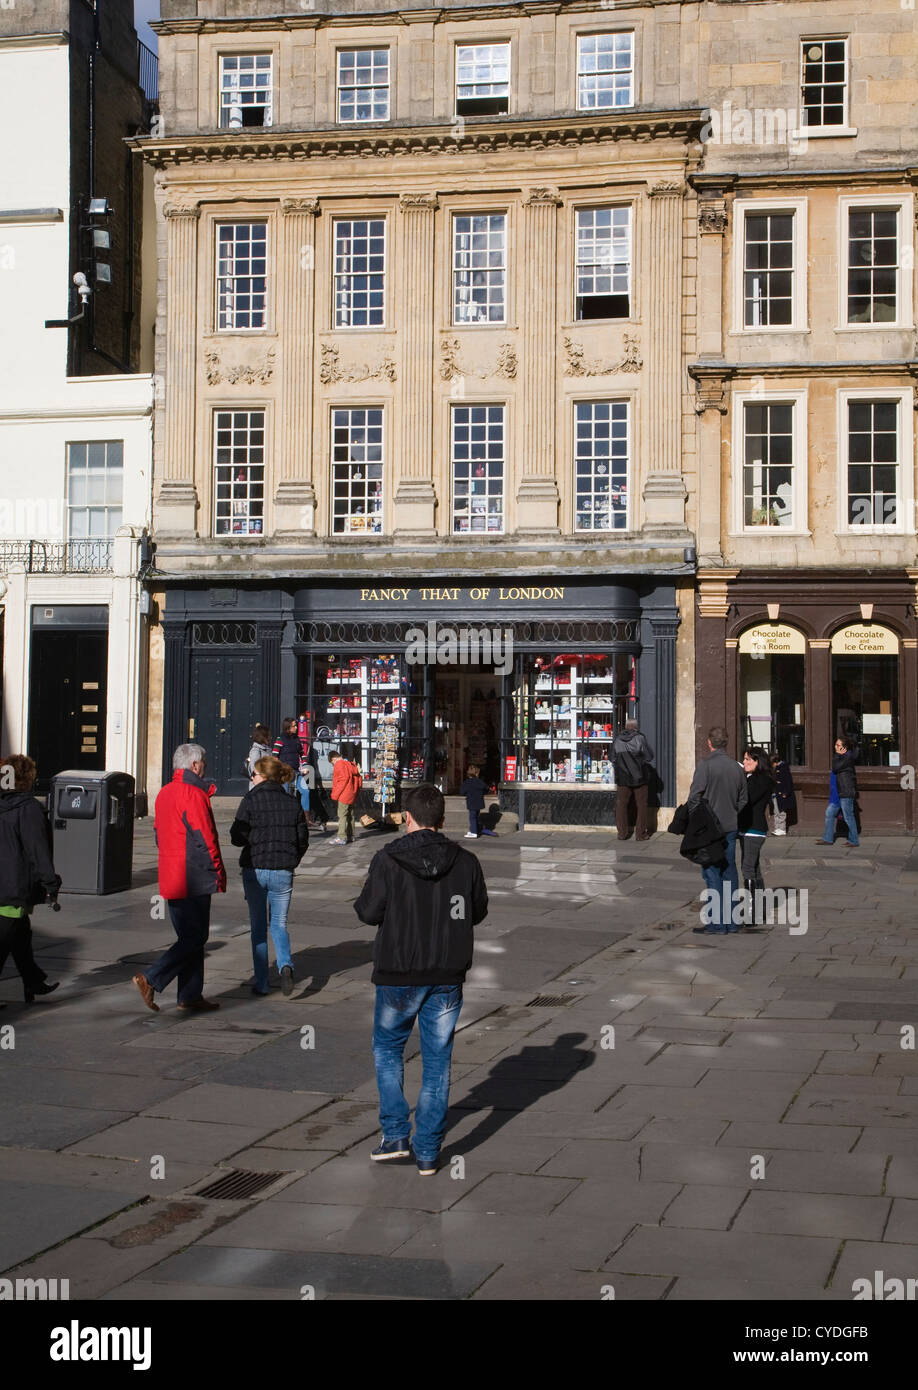 'Fancy That of London' shop in Abbey Square, Bath, Somerset, England - Stock Image